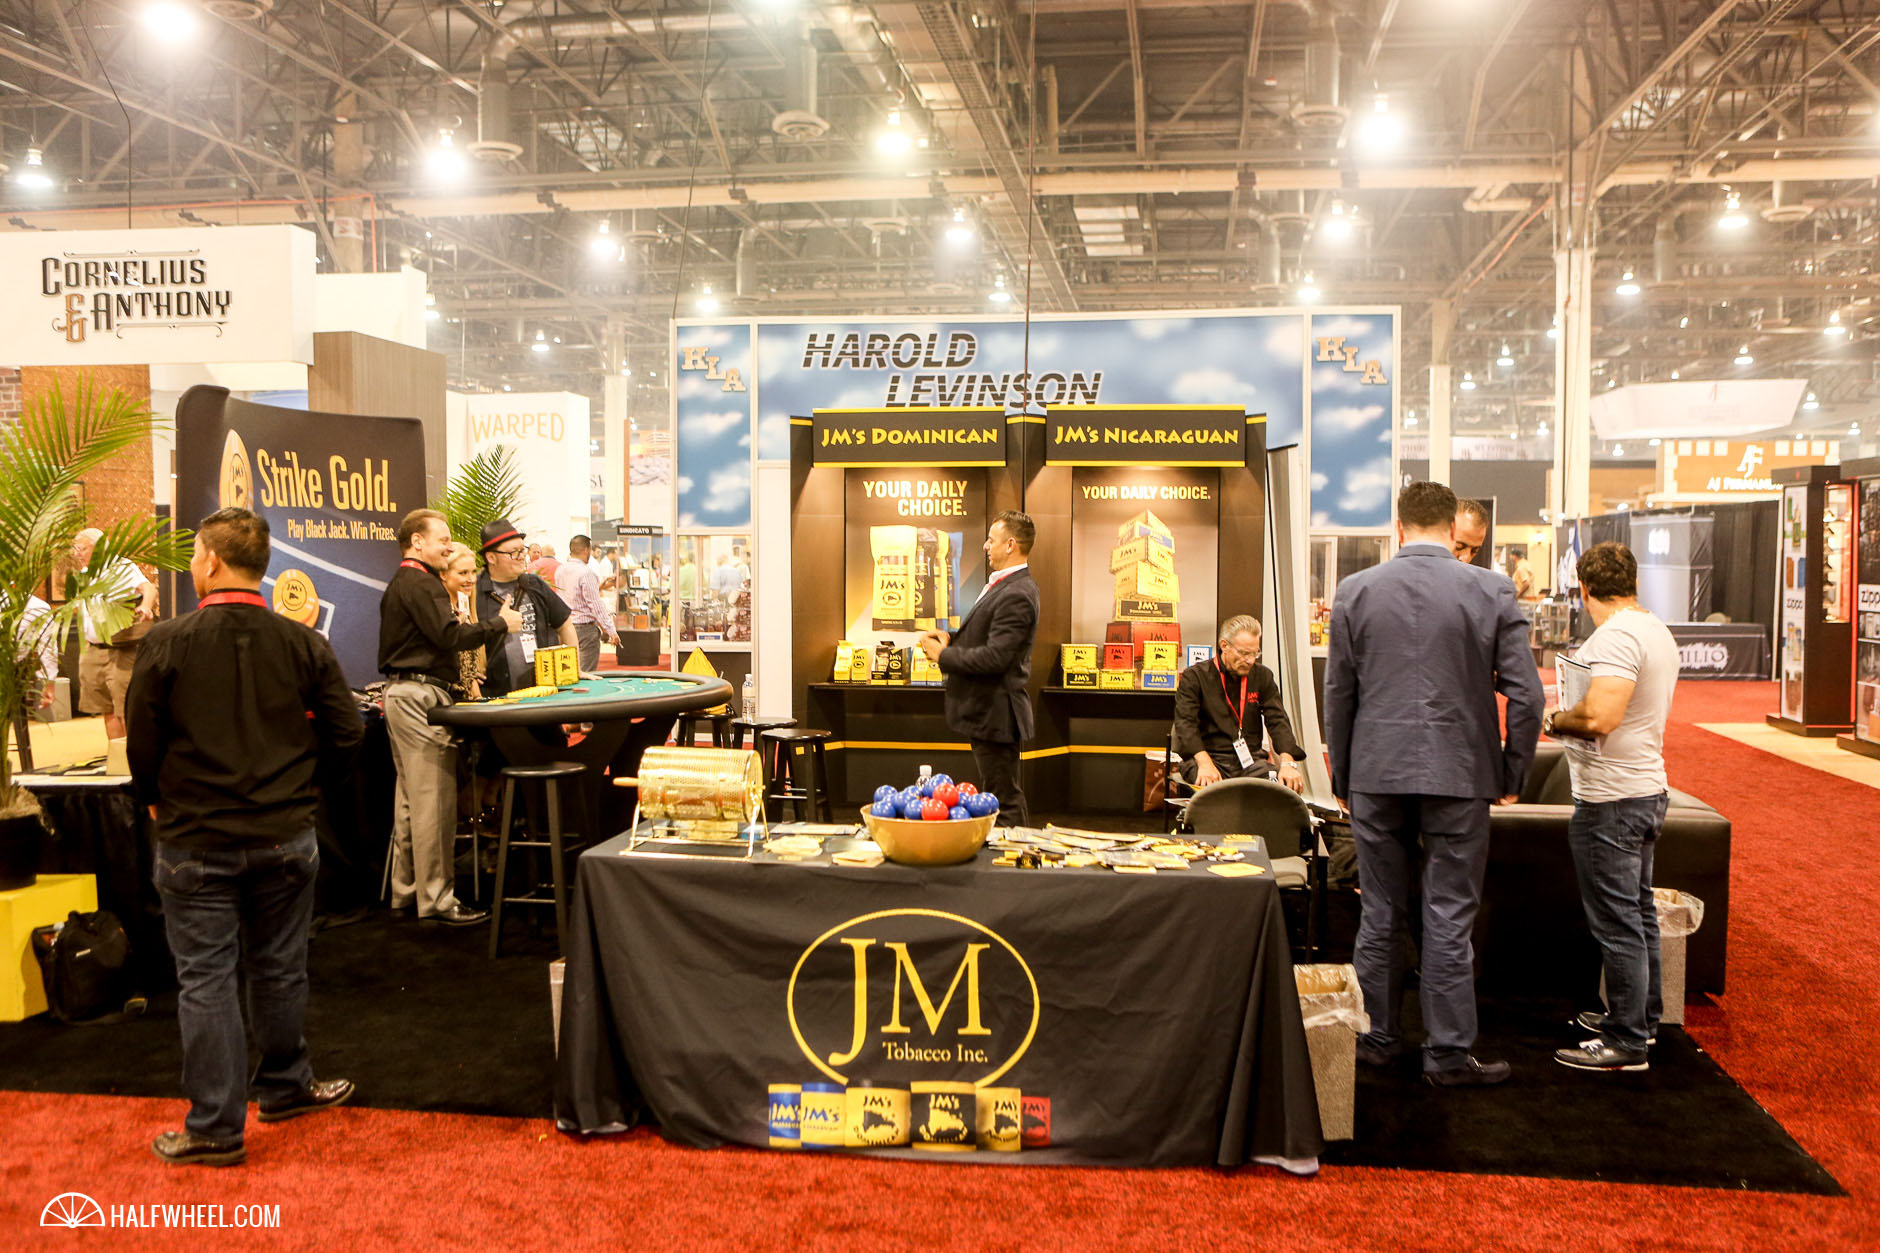 JM Tobacco Booth